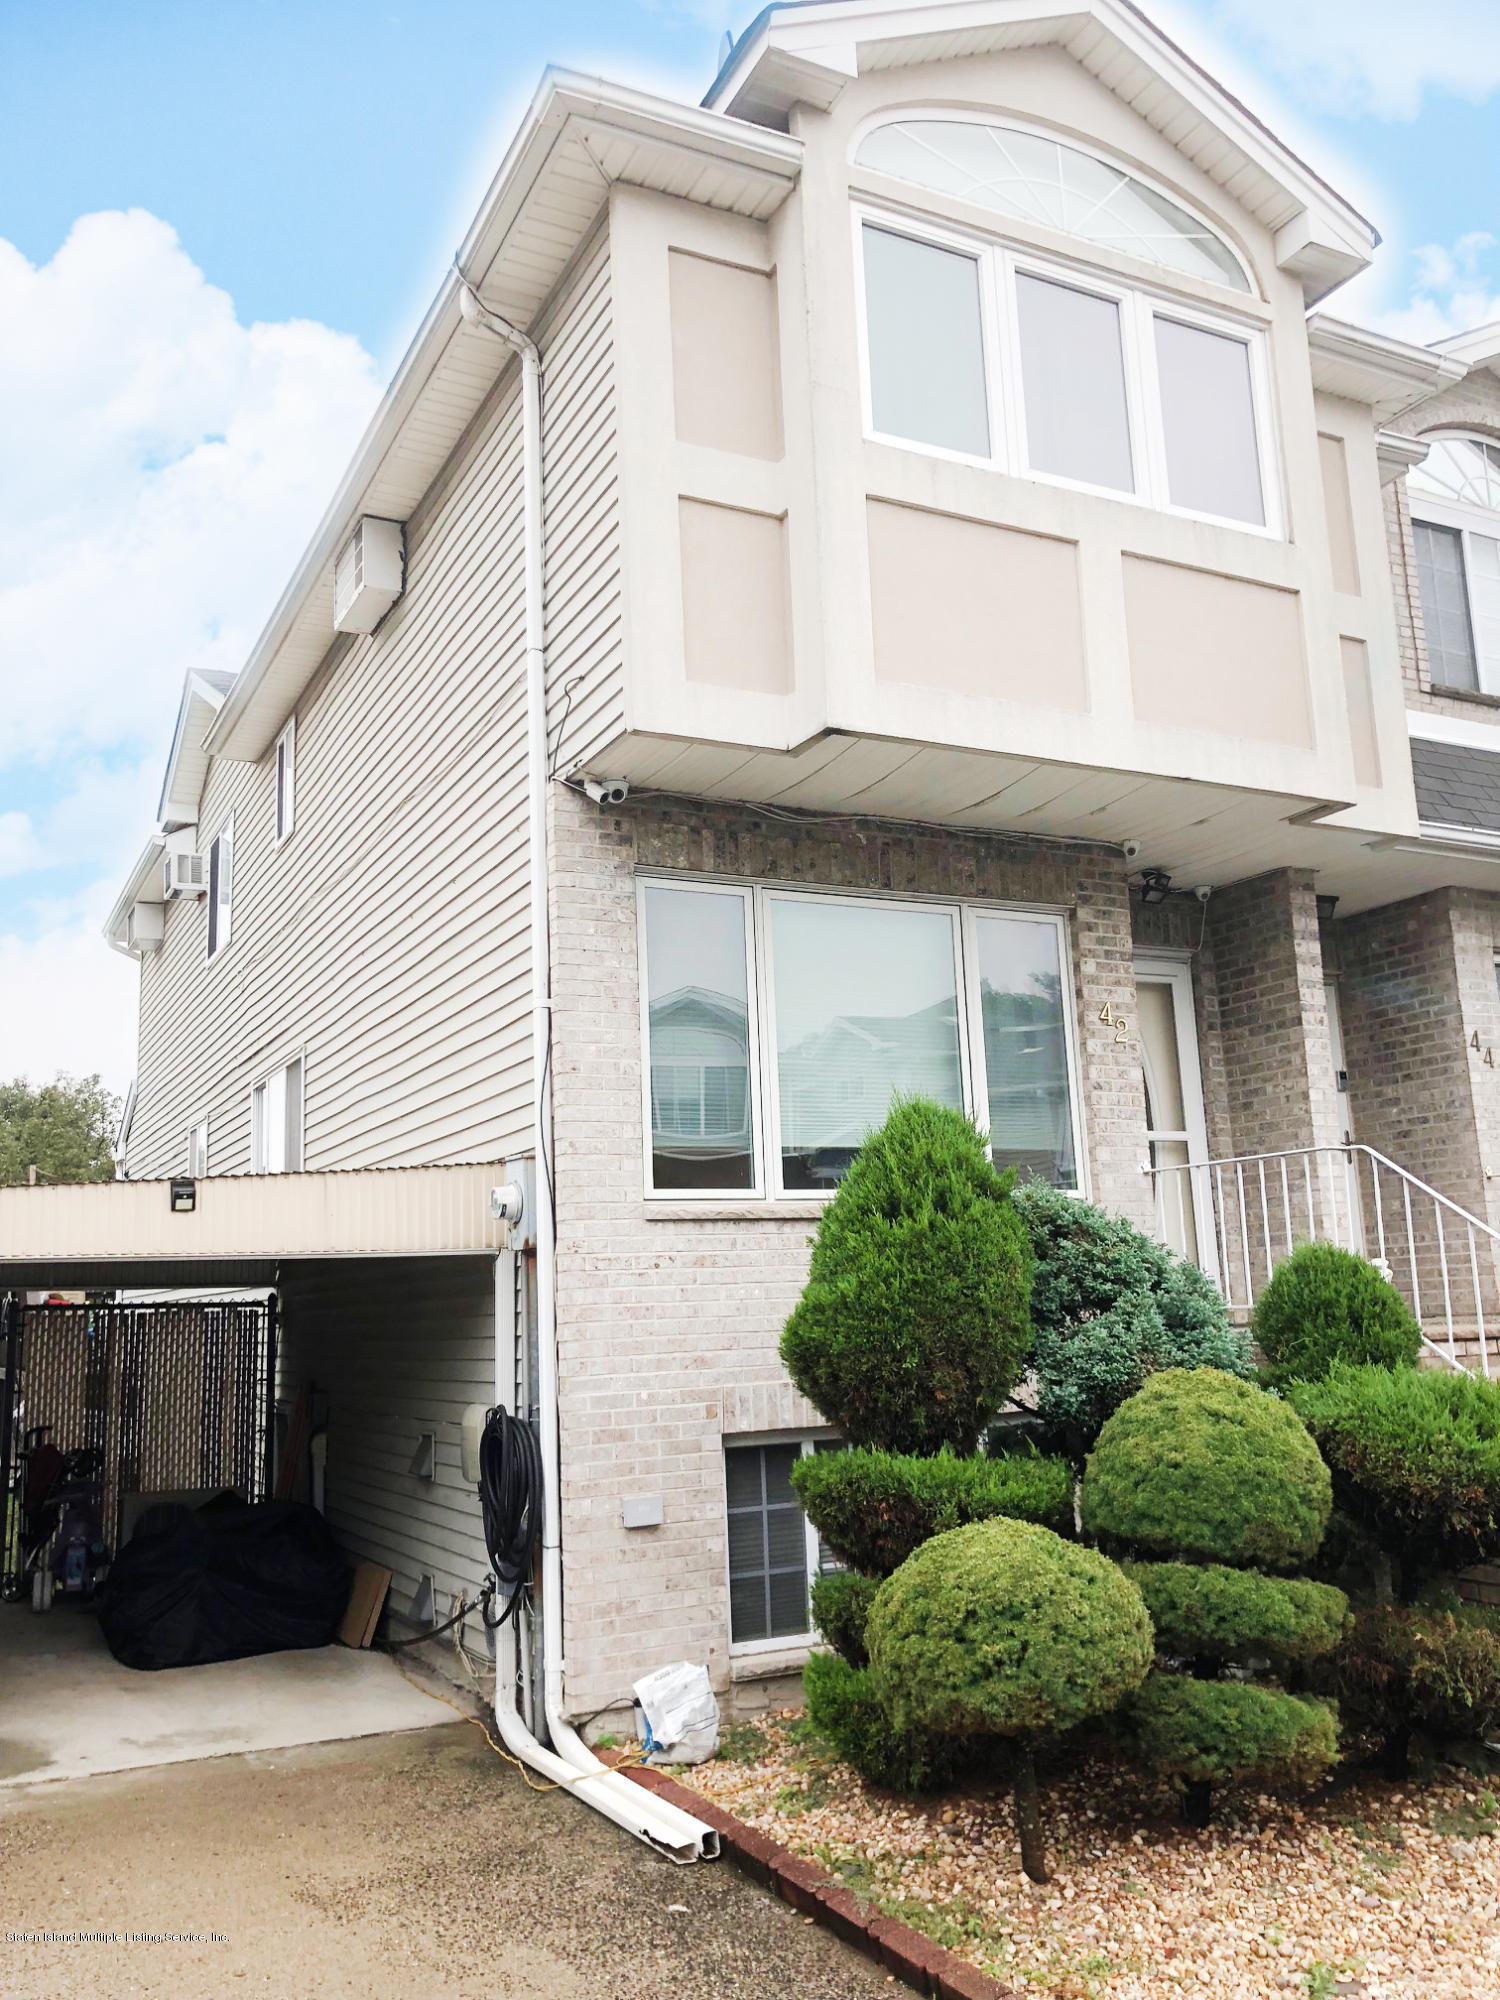 Single Family - Semi-Attached 42 Latourette Lane  Staten Island, NY 10314, MLS-1122620-19